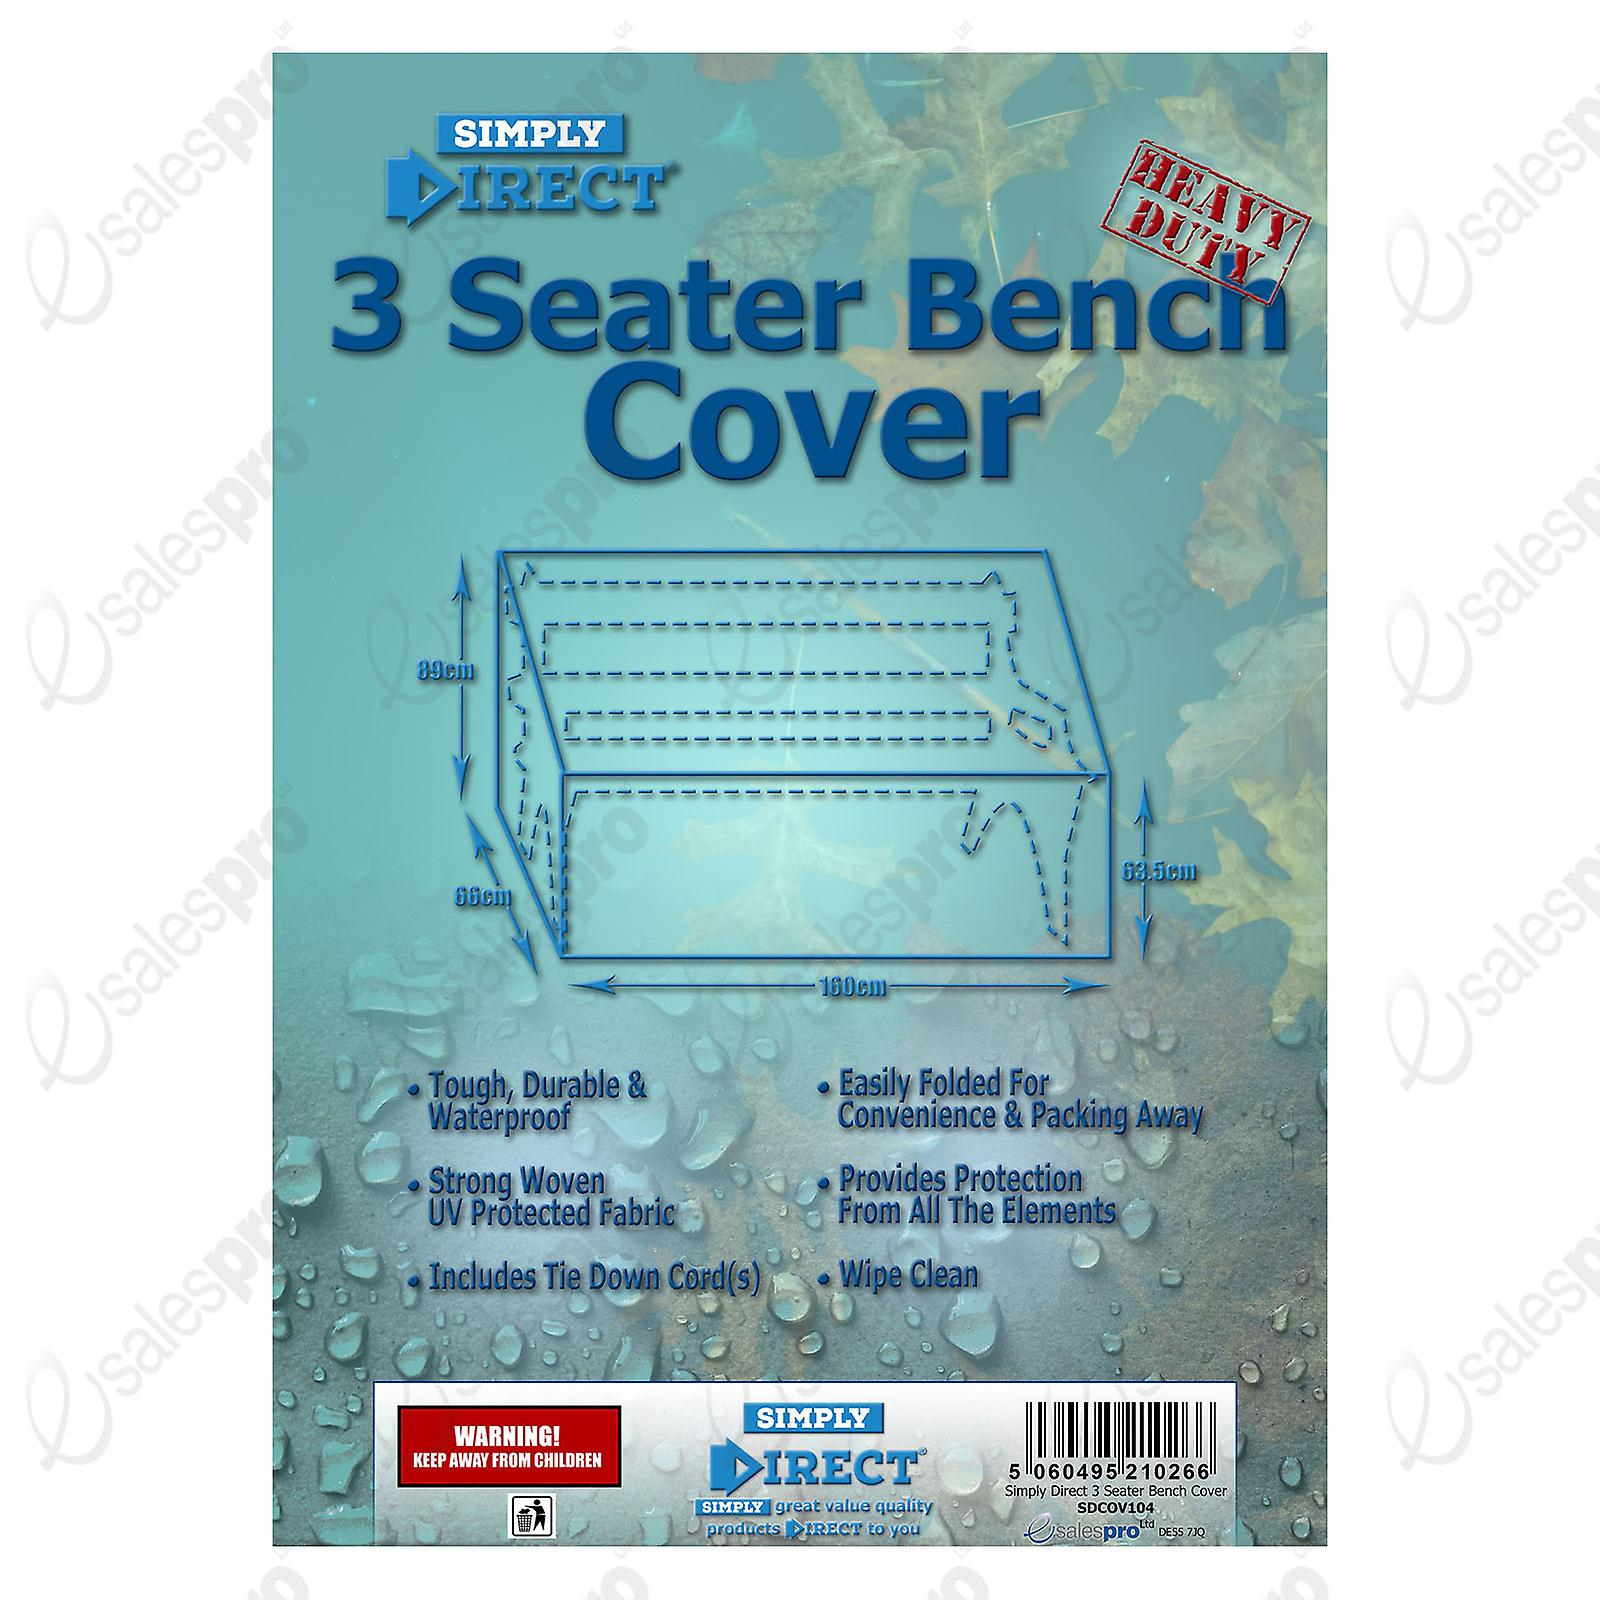 Simply Direct 3 Seater Bench Cover - Waterproof Weatherproof Outdoor Furniture Protector